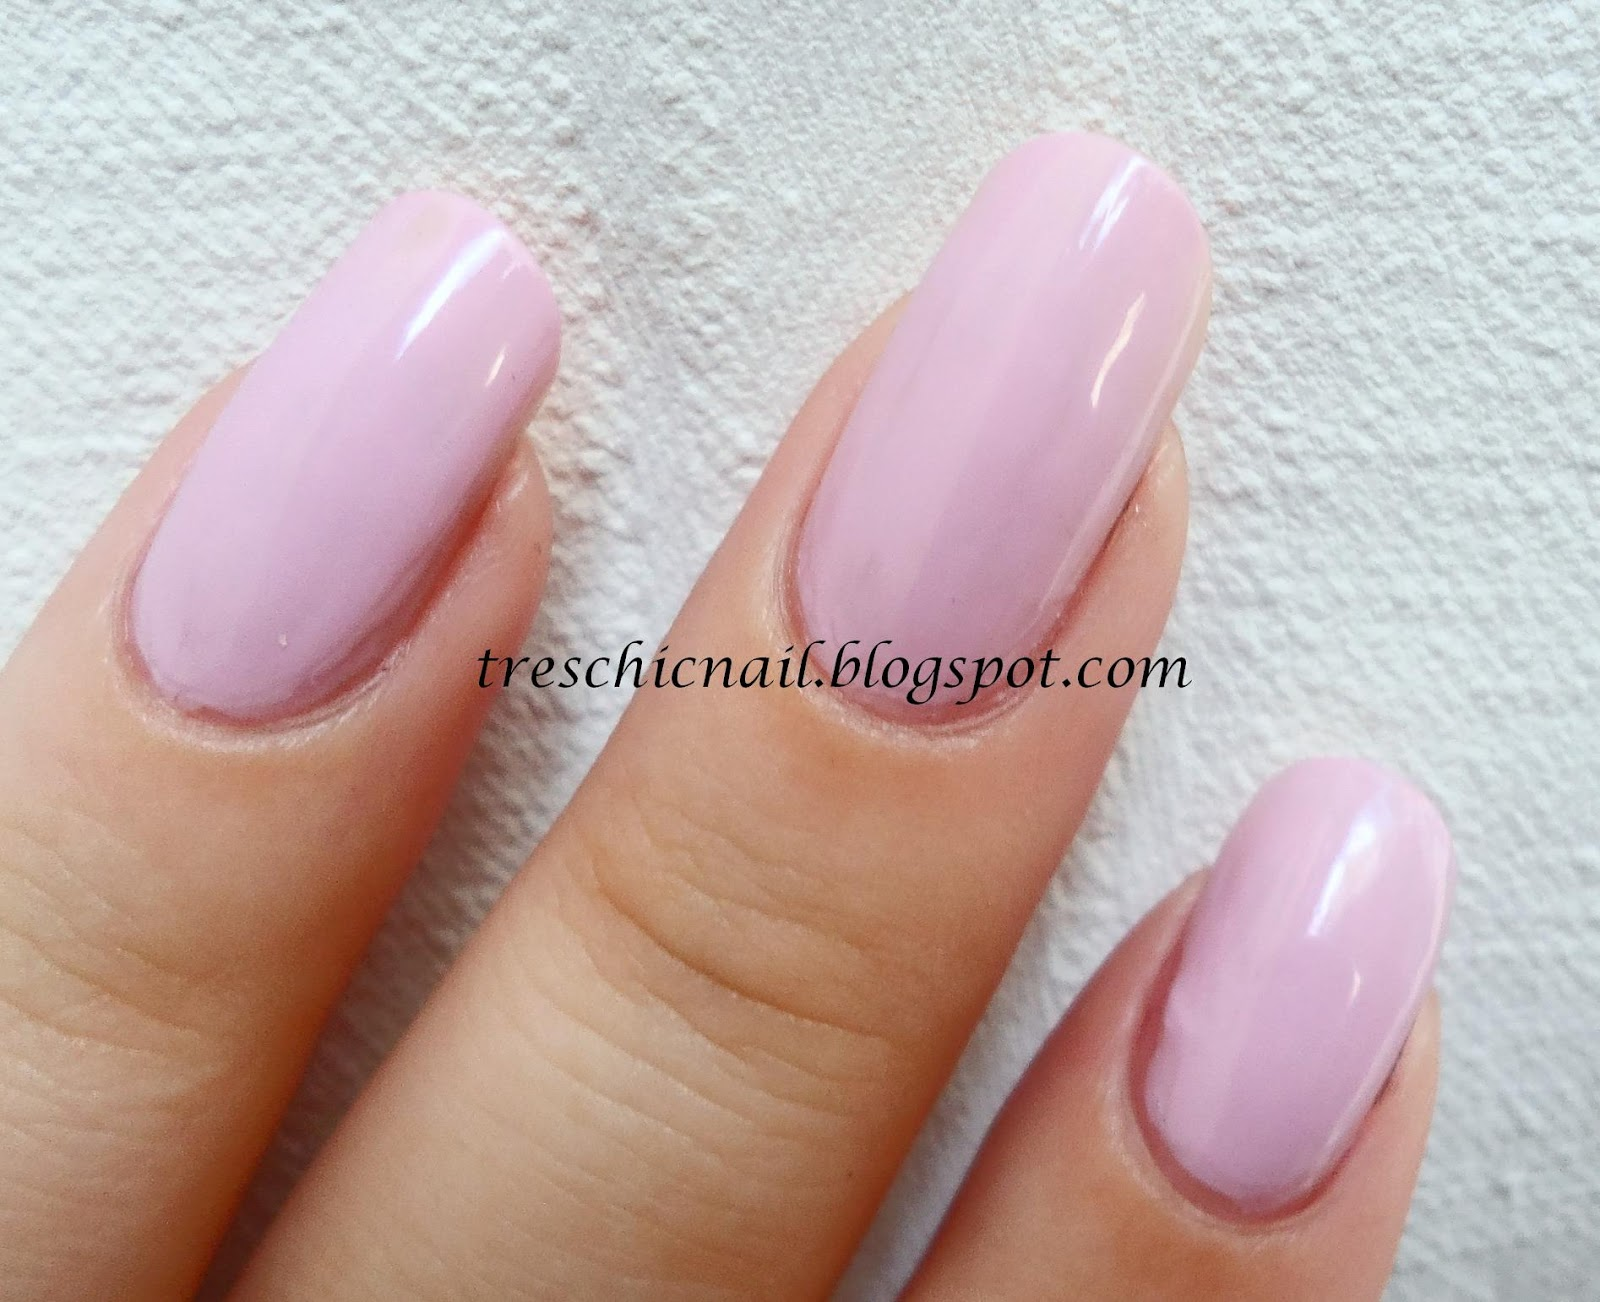 Très Chic Nail: My Newly Rounded Nails